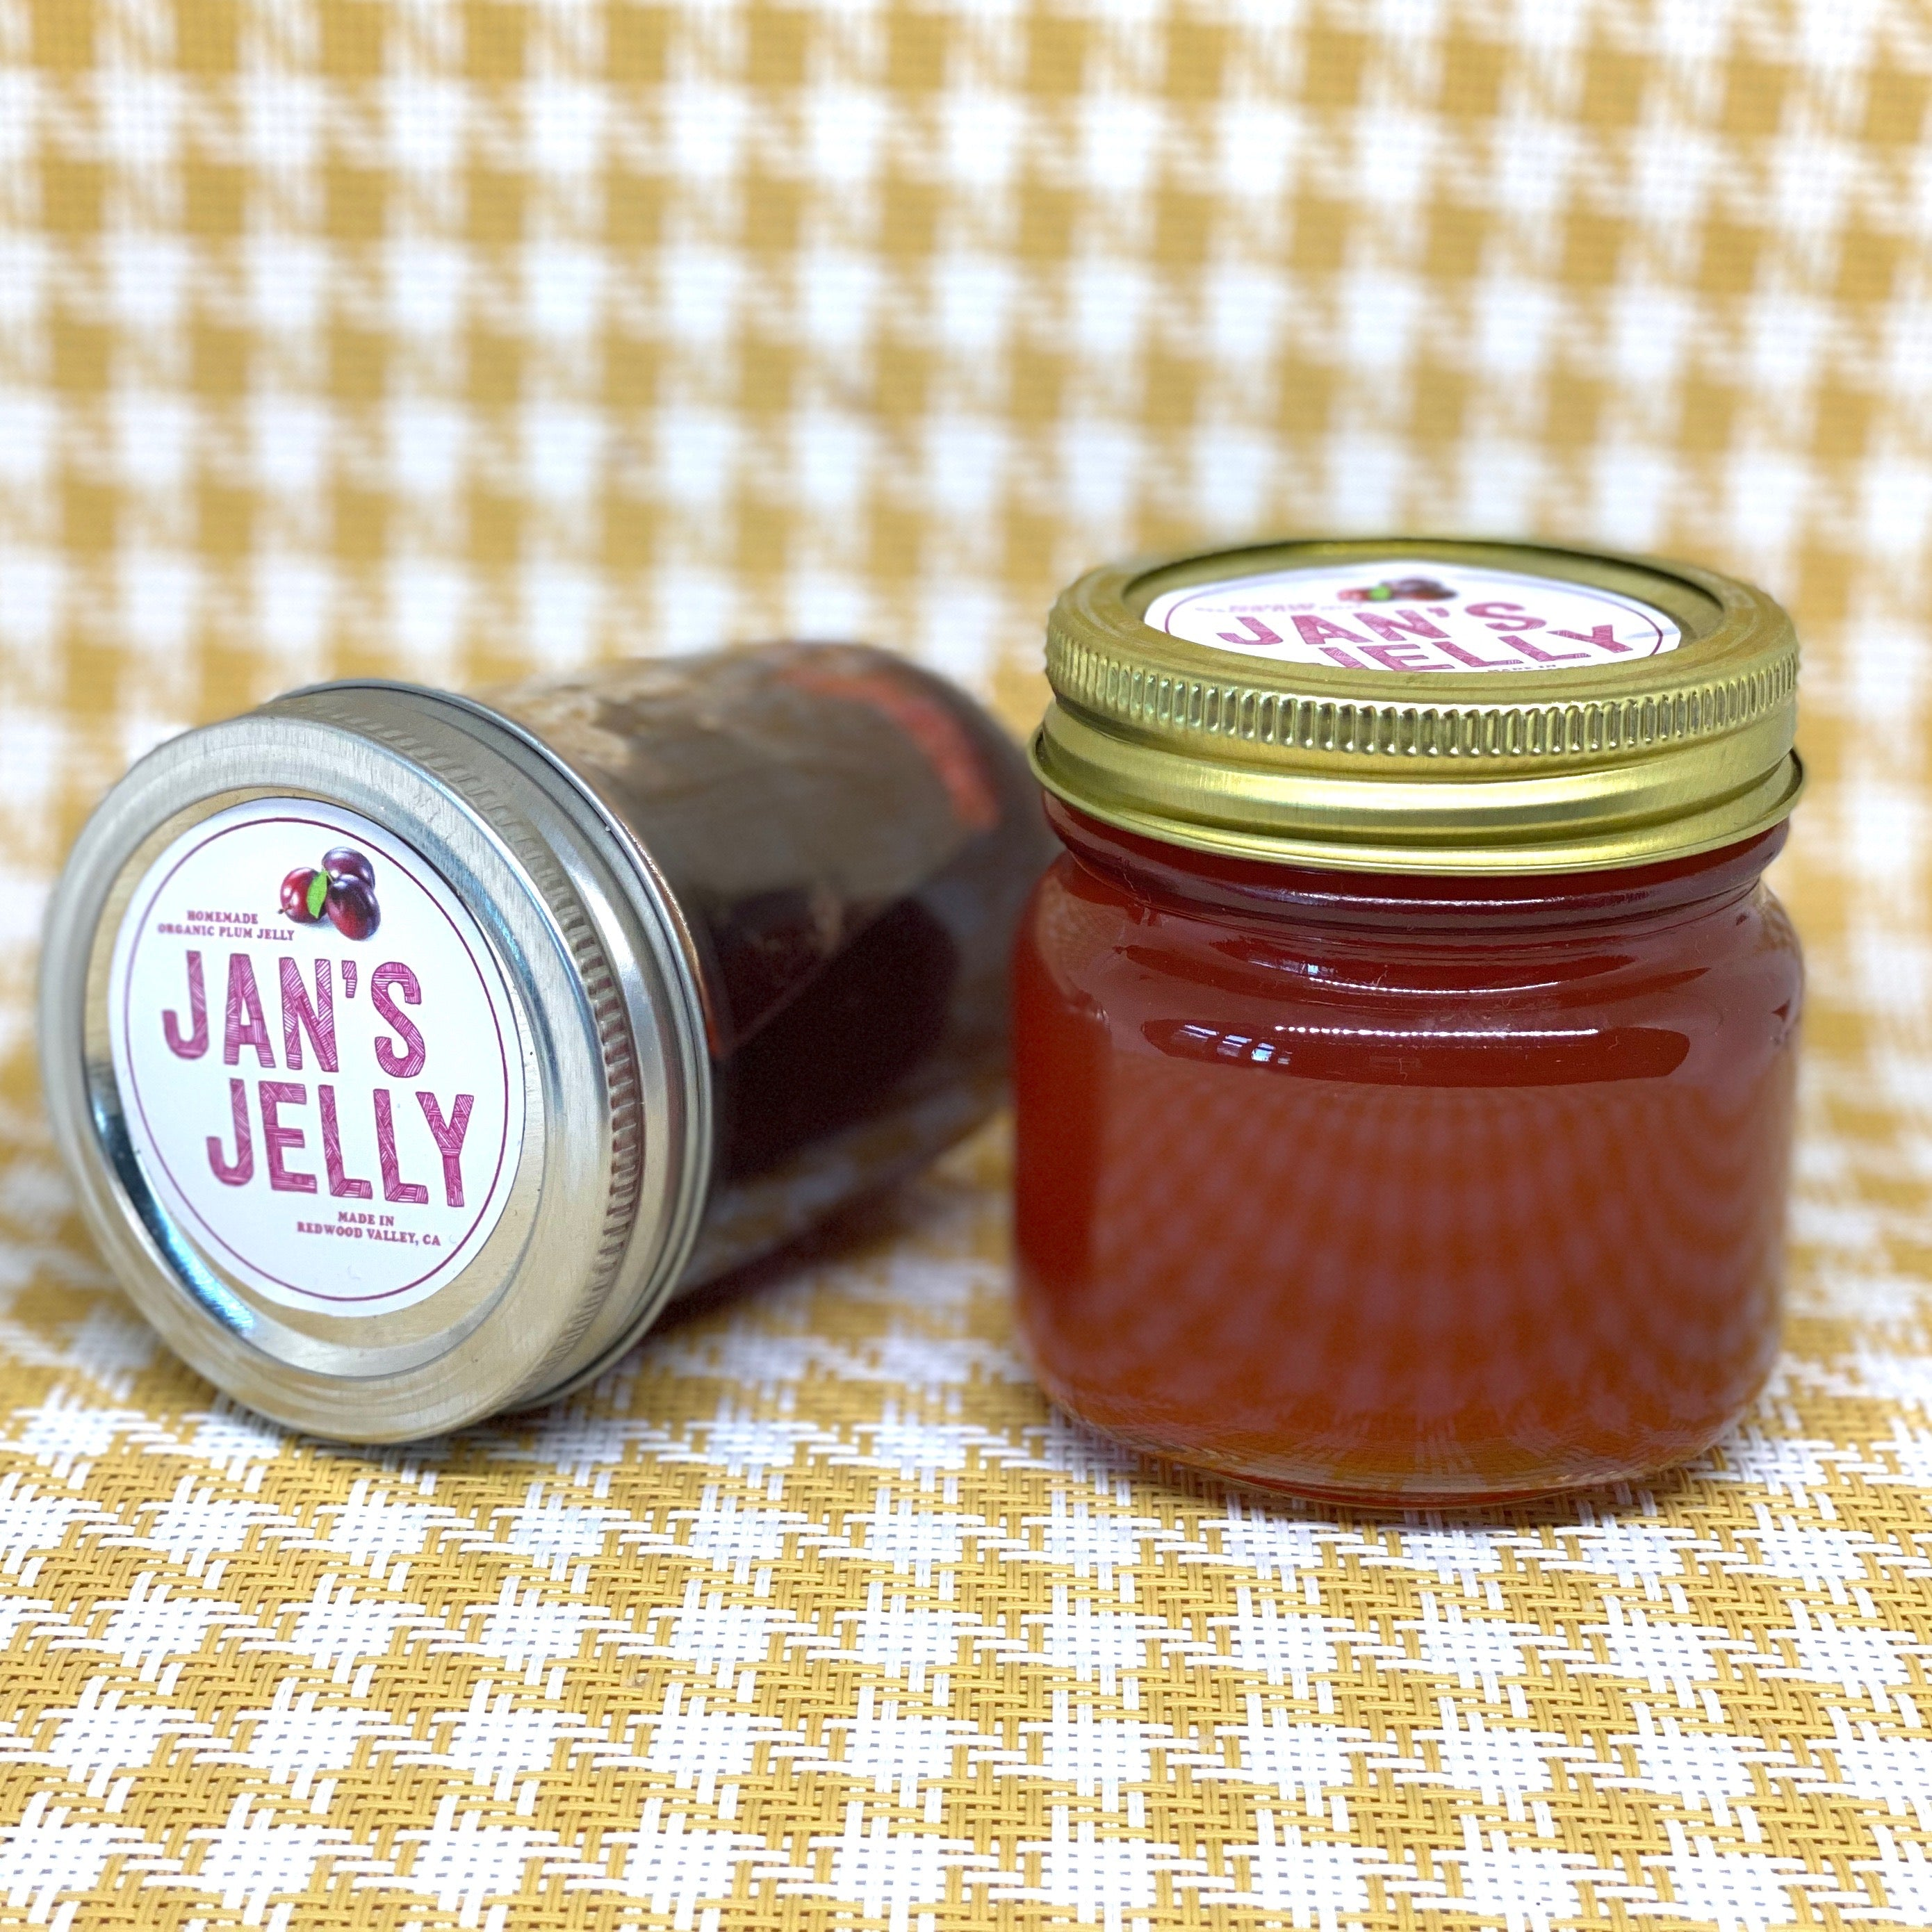 Jan's Jelly